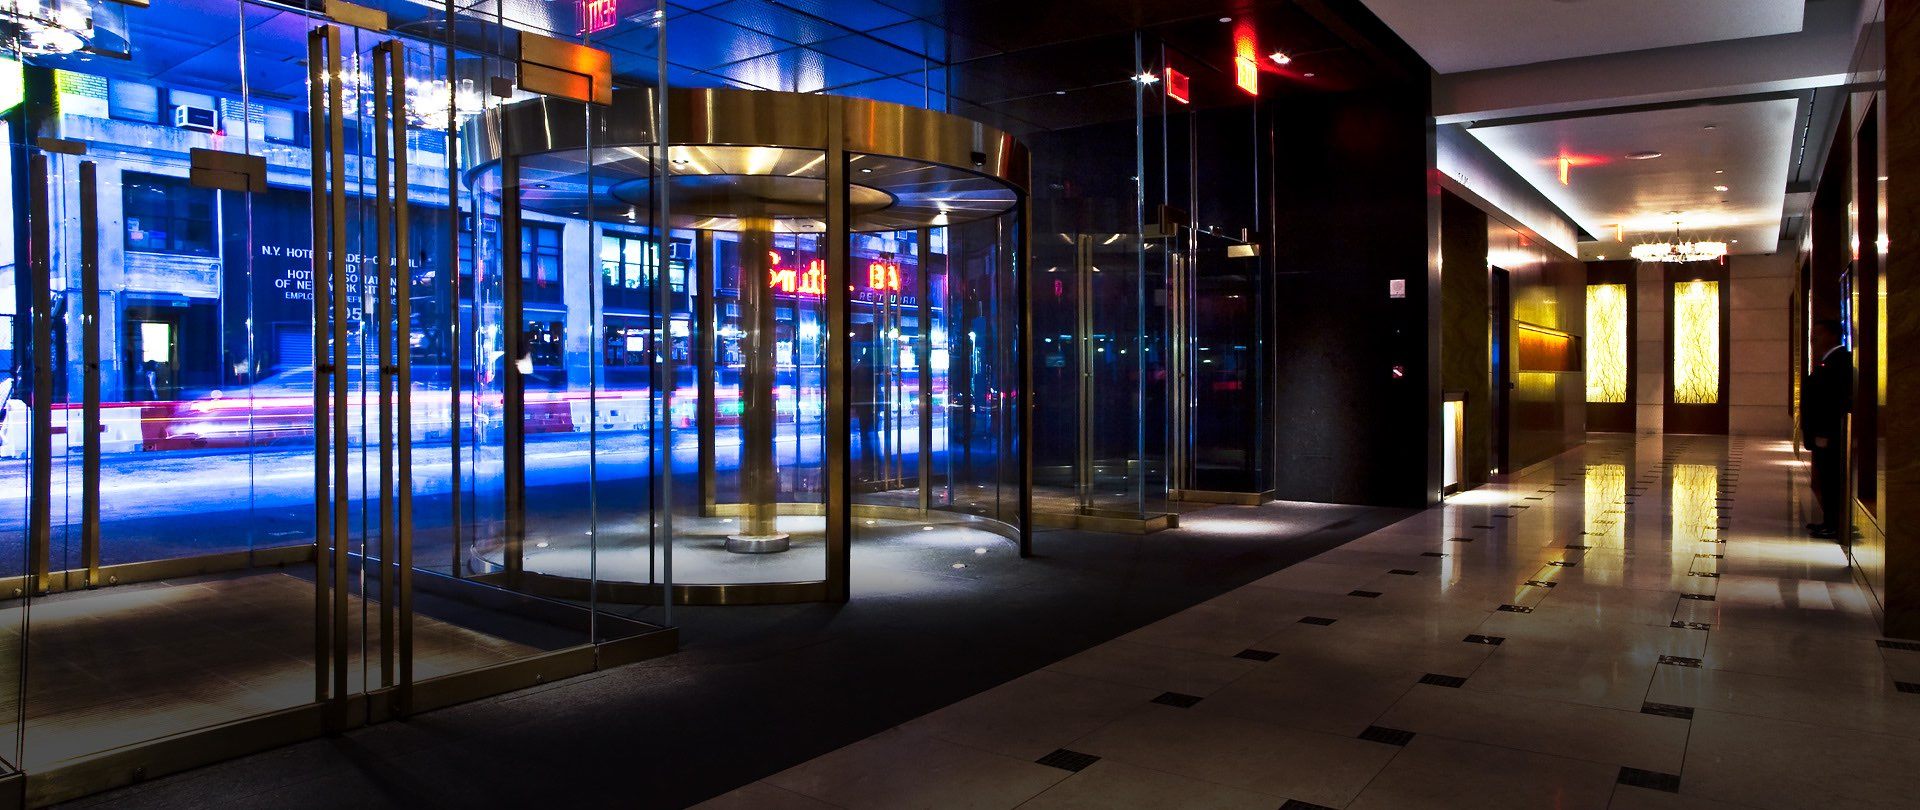 the revolving door at the hotel entrance